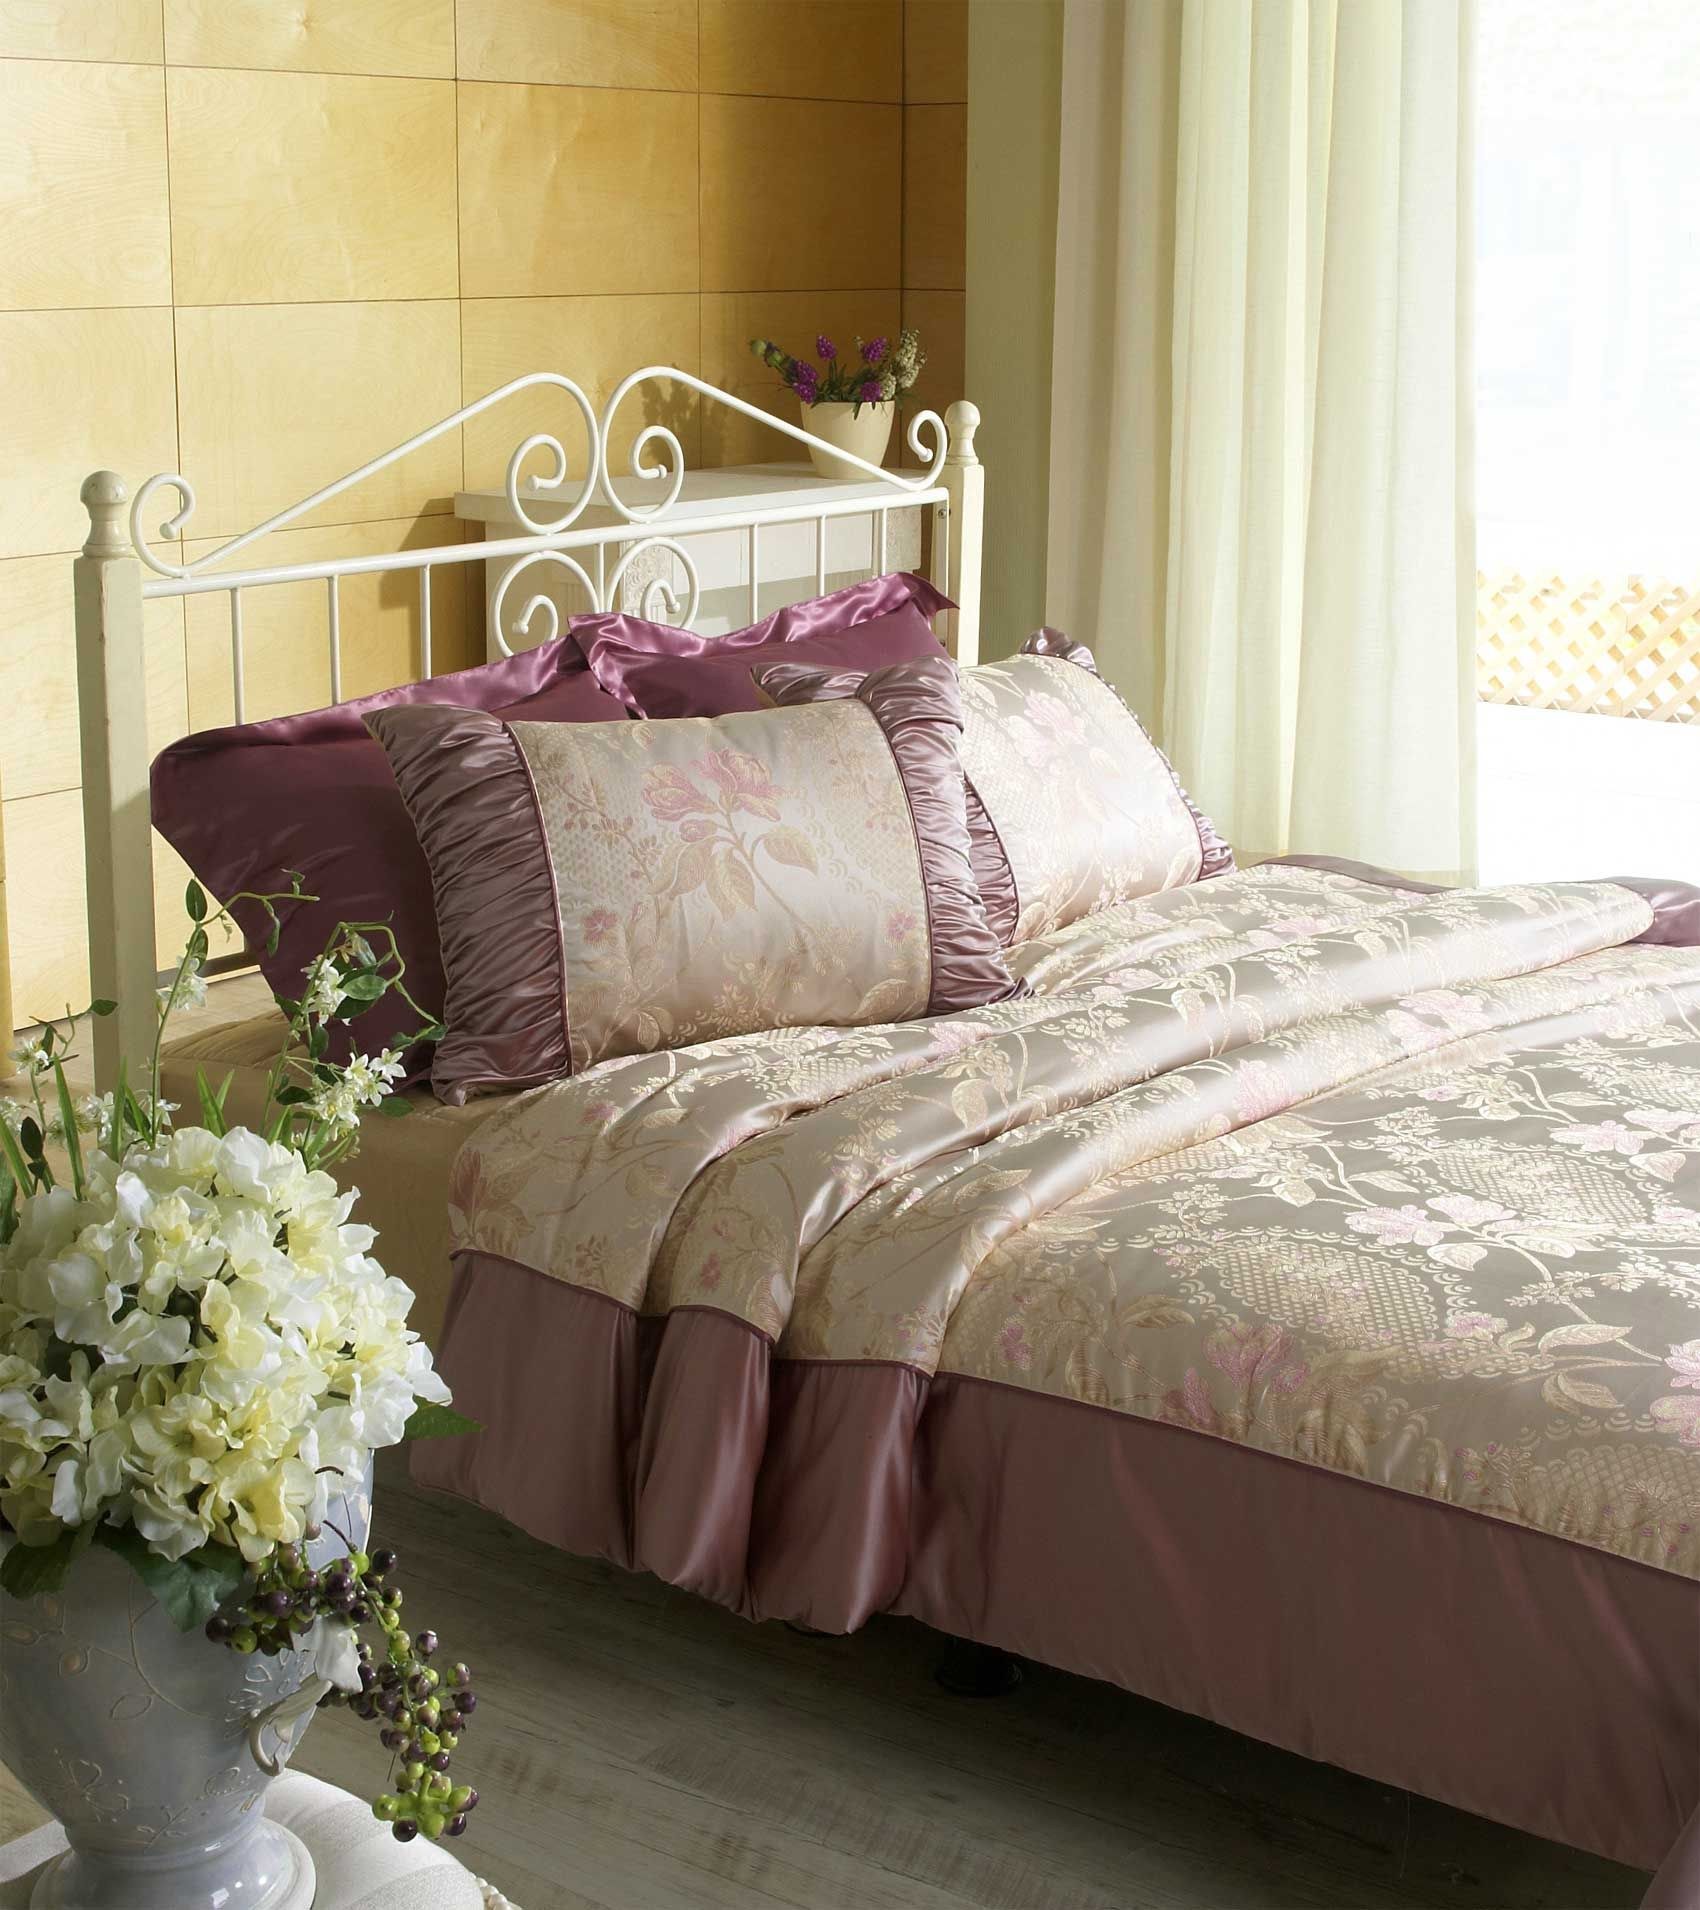 Top 10 Romantic Bedroom Ideas For Married Couples